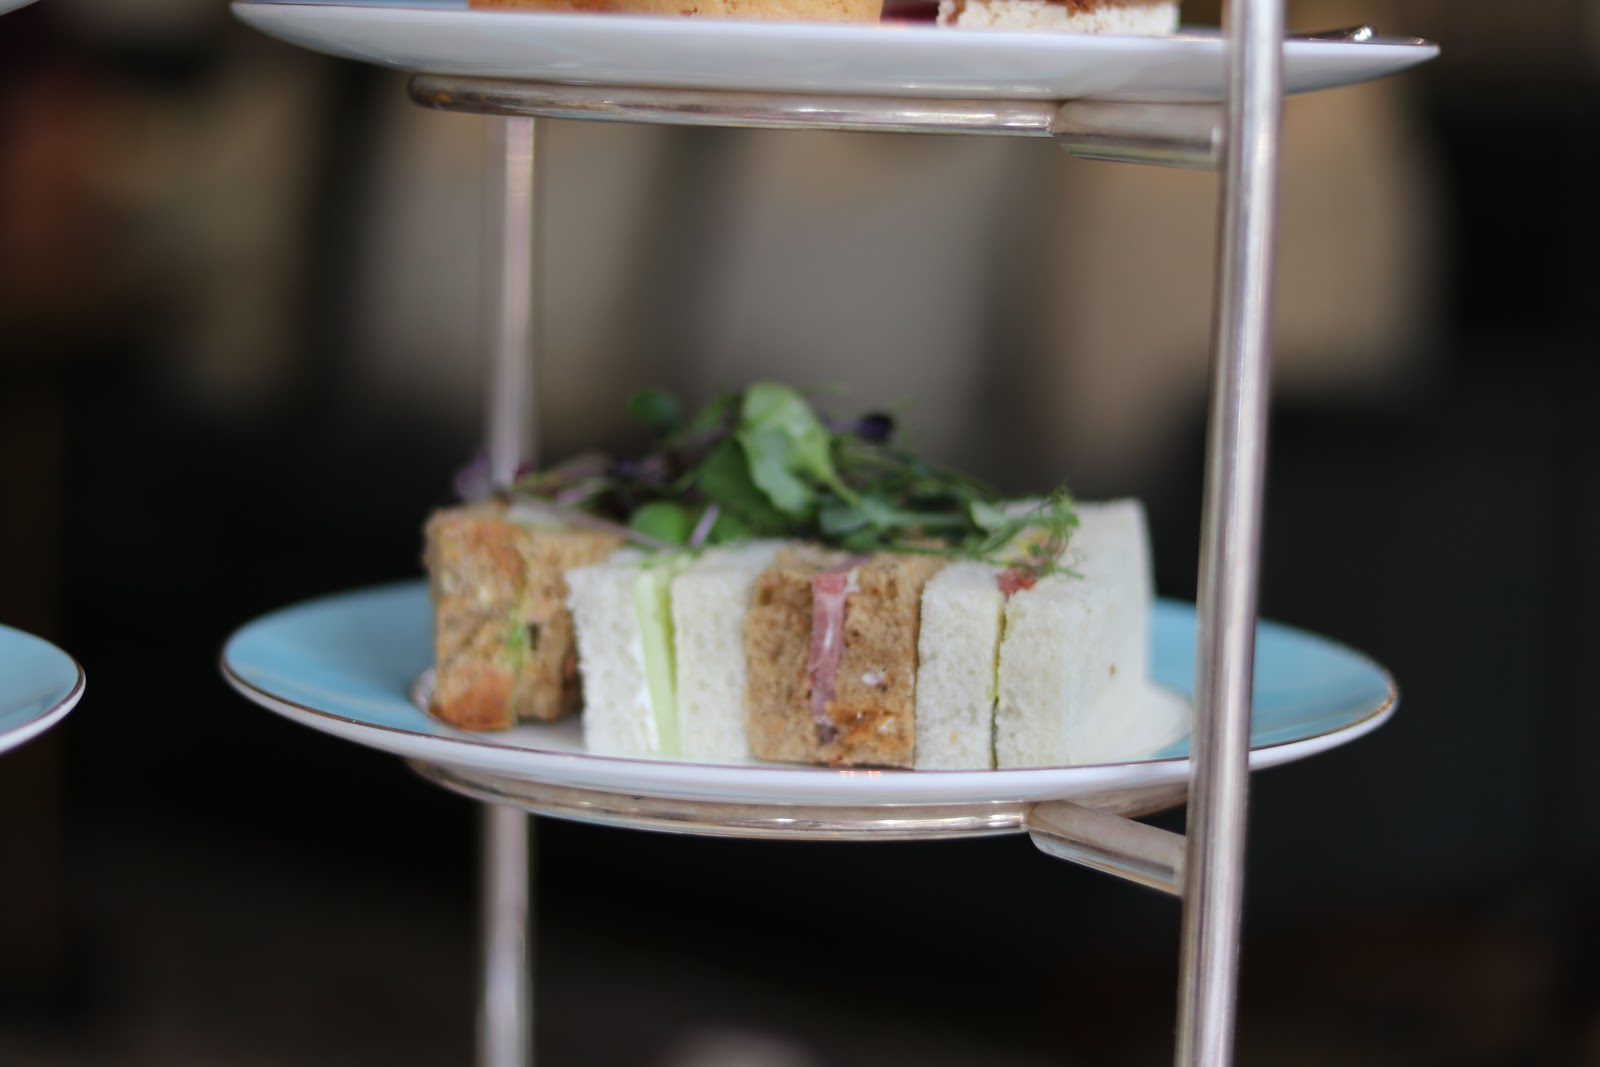 Sandwiches, Afternoon Tea, The Town House, The Kensington Hotel, Kensington, Chelsea, London